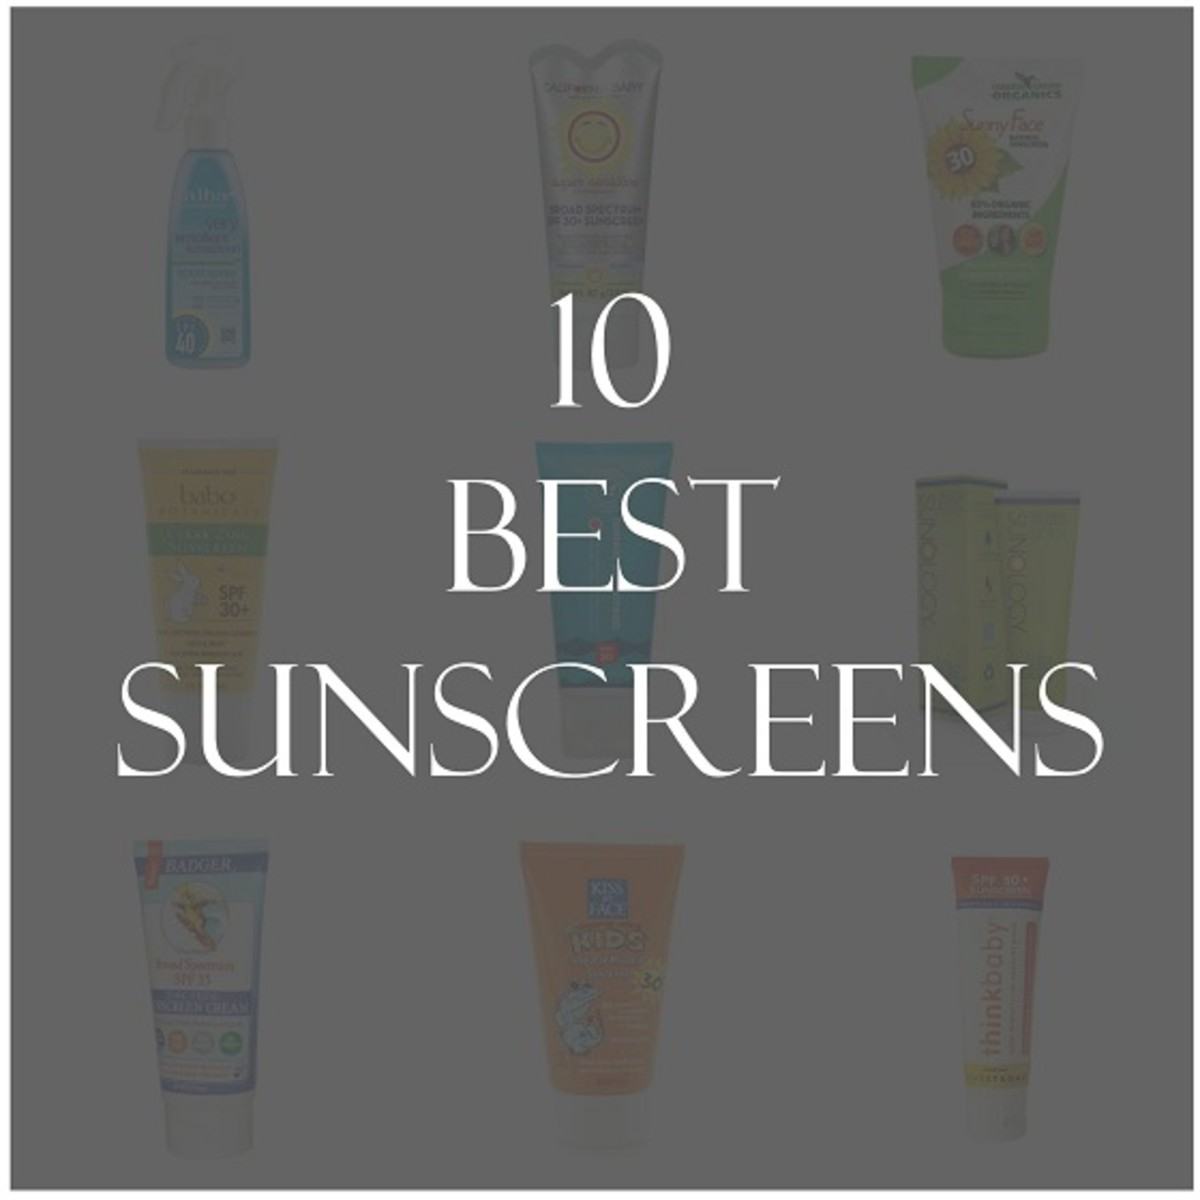 10 Best Sunscreens